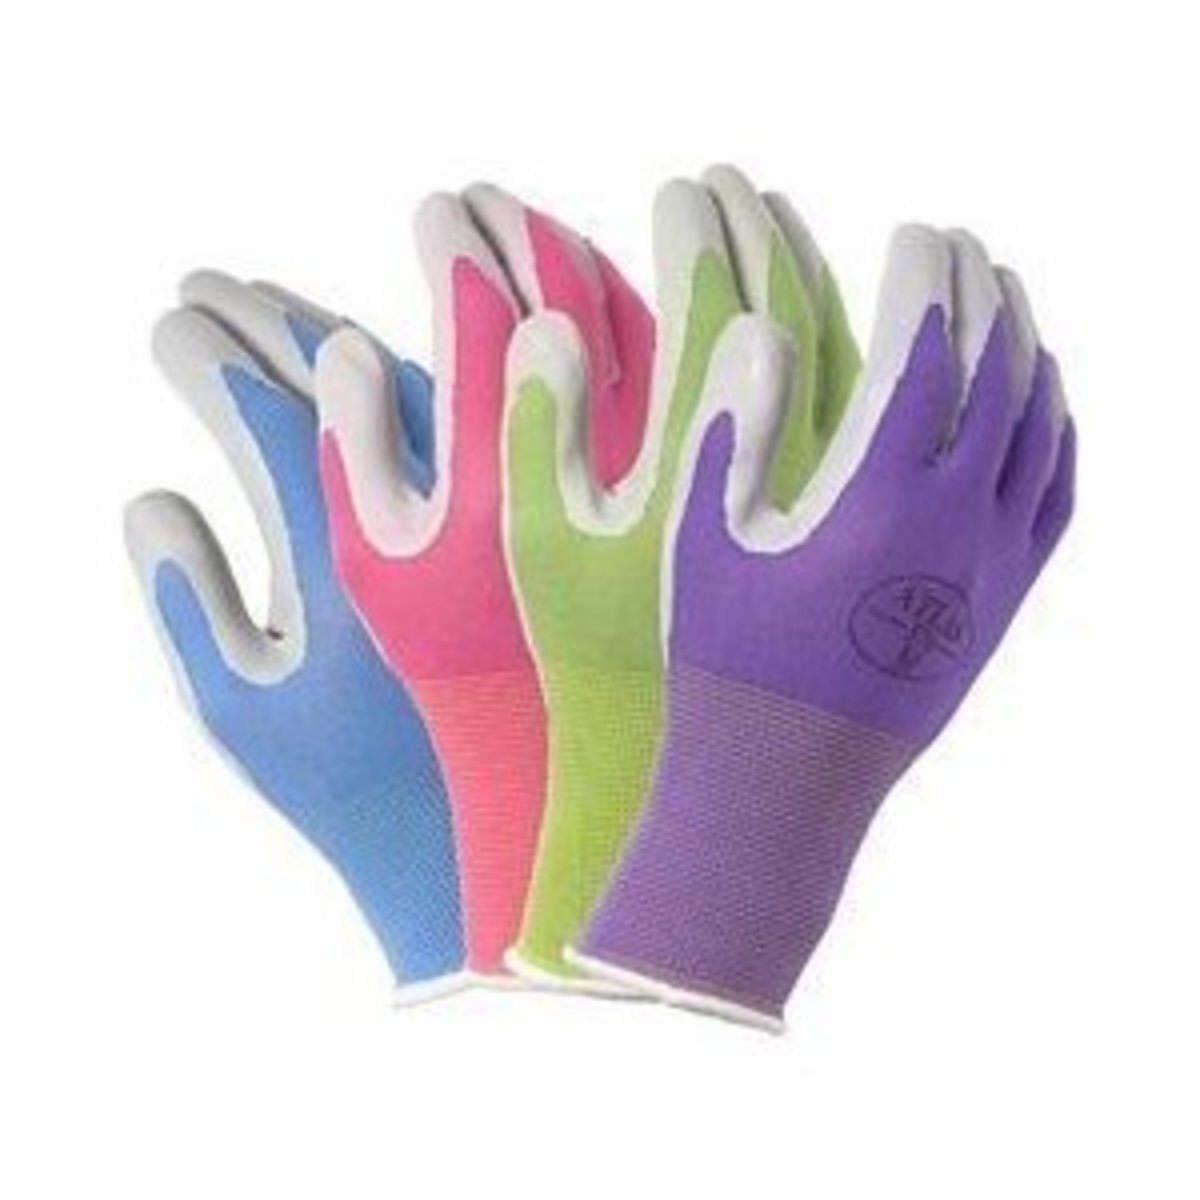 Atlas 370 Garden Club Gloves. Assorted Colors - 4 Pack. Size Large